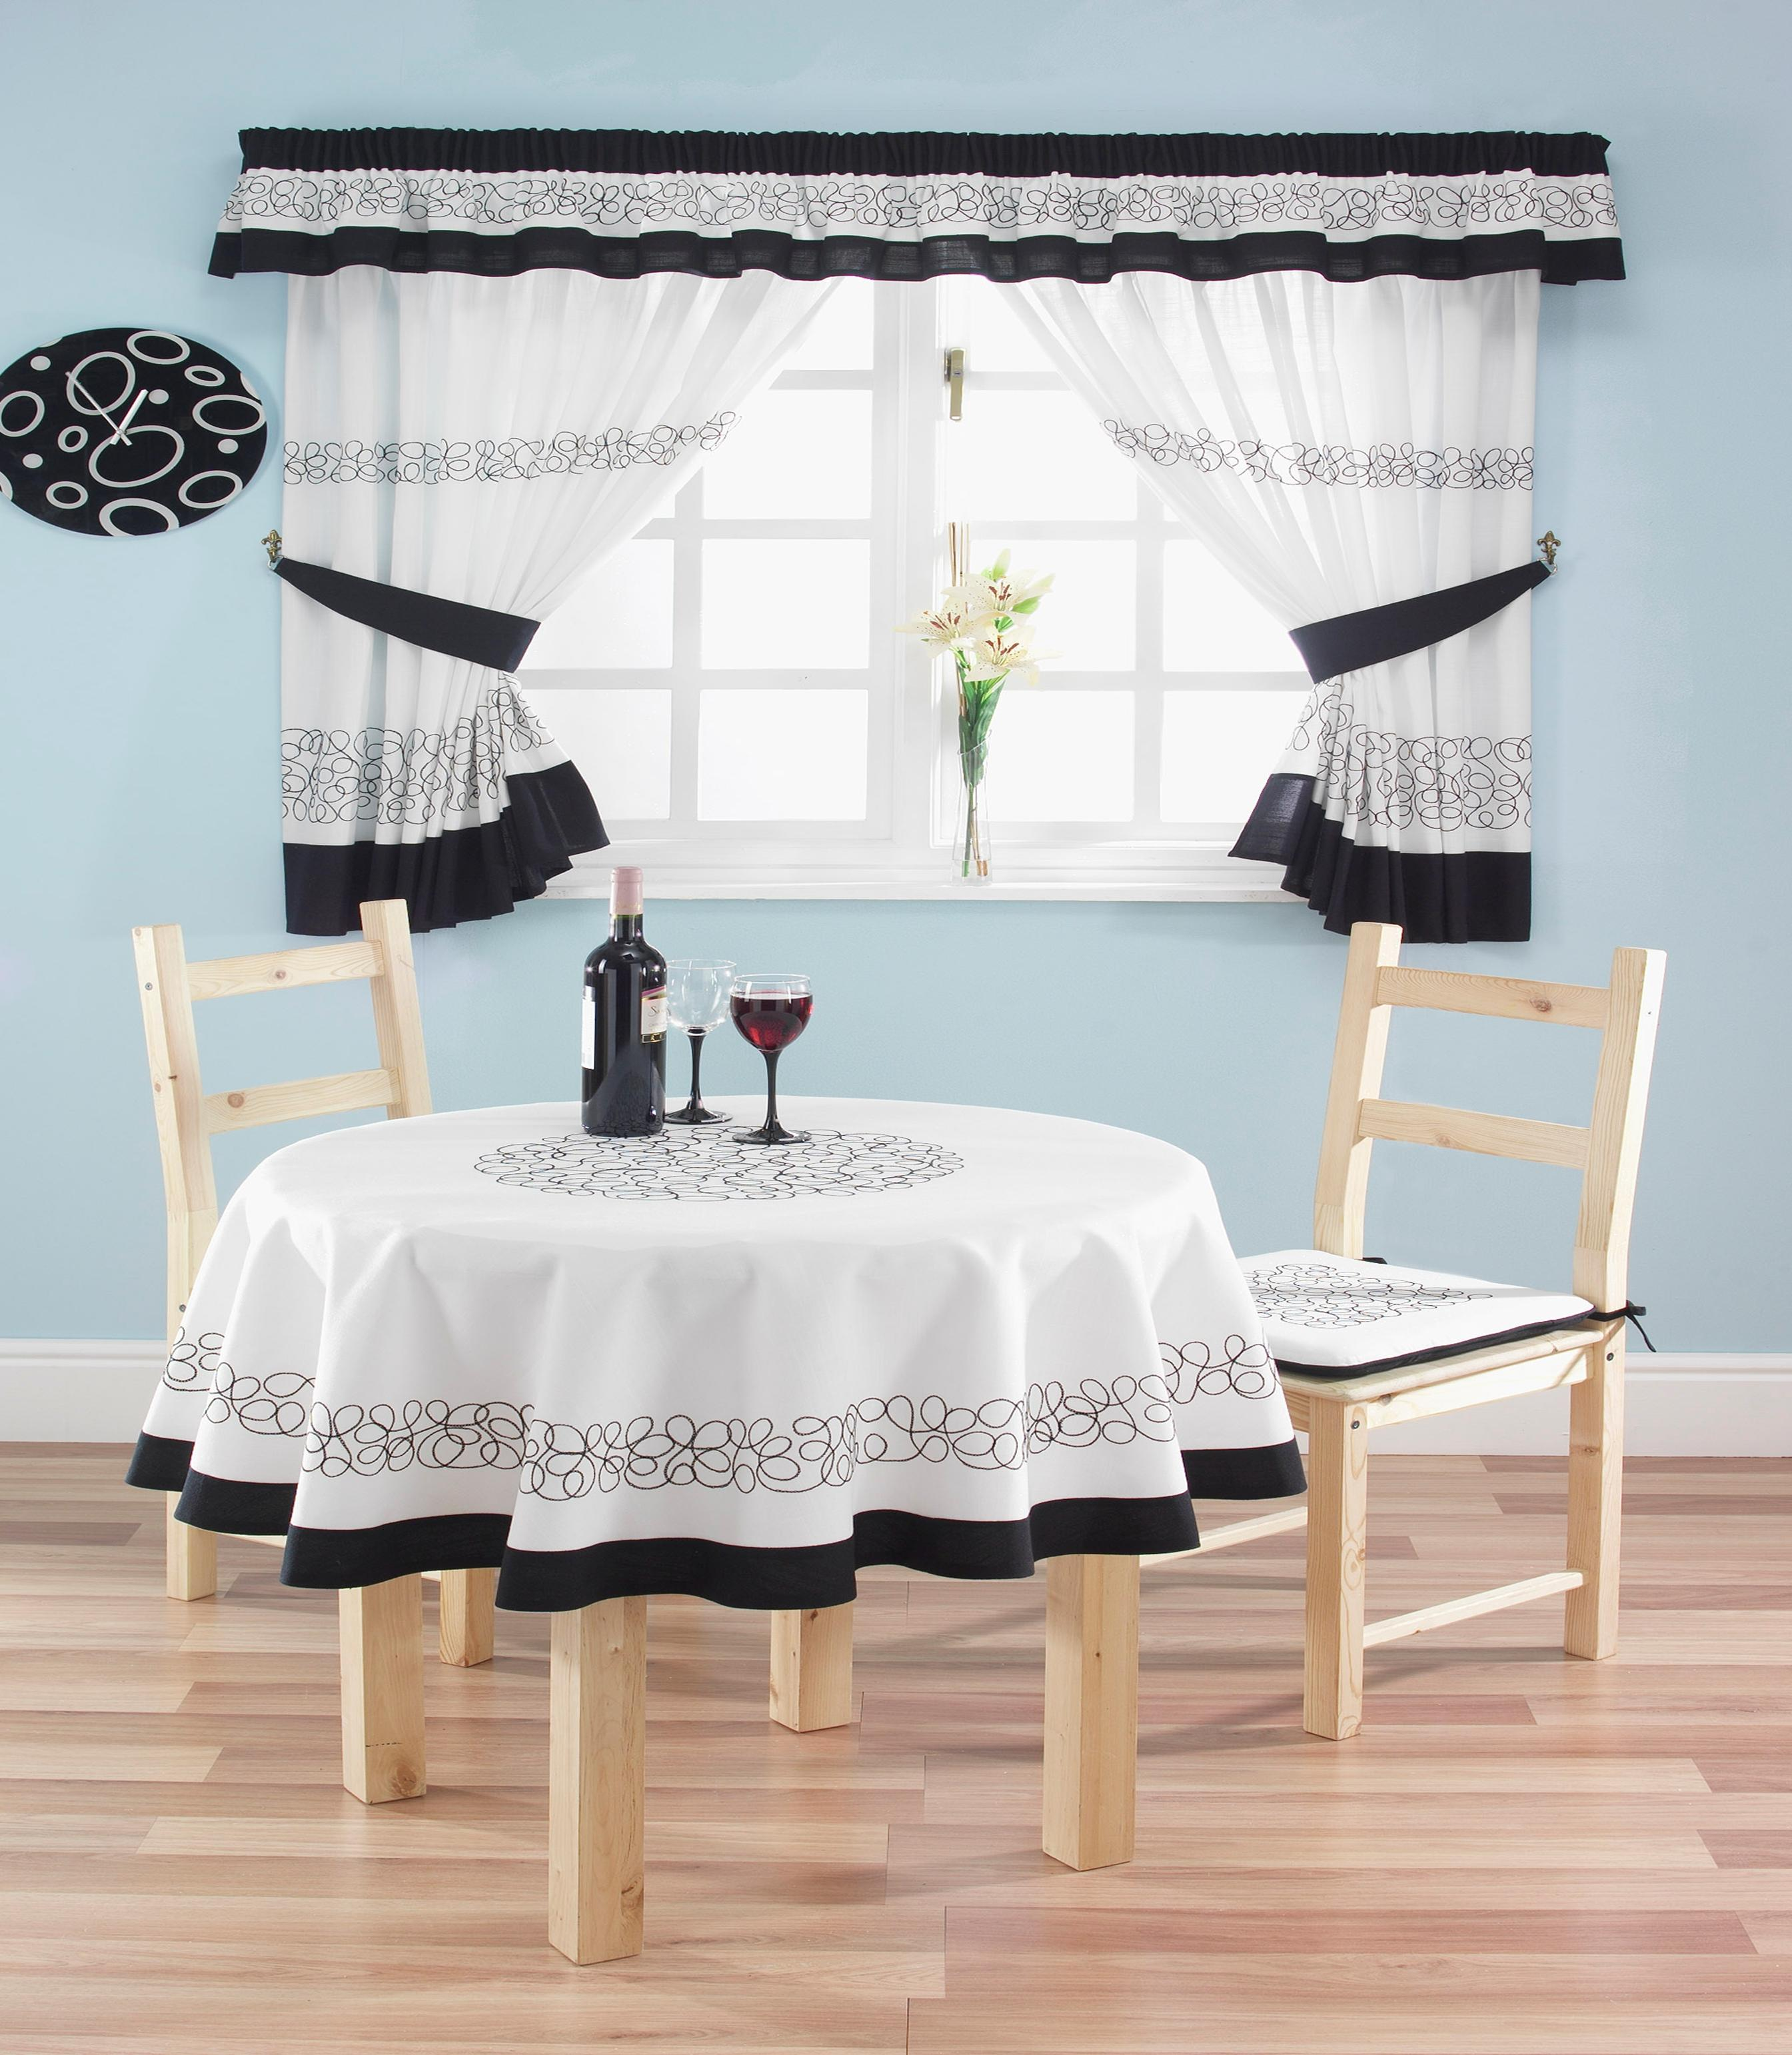 deco-black-curtains